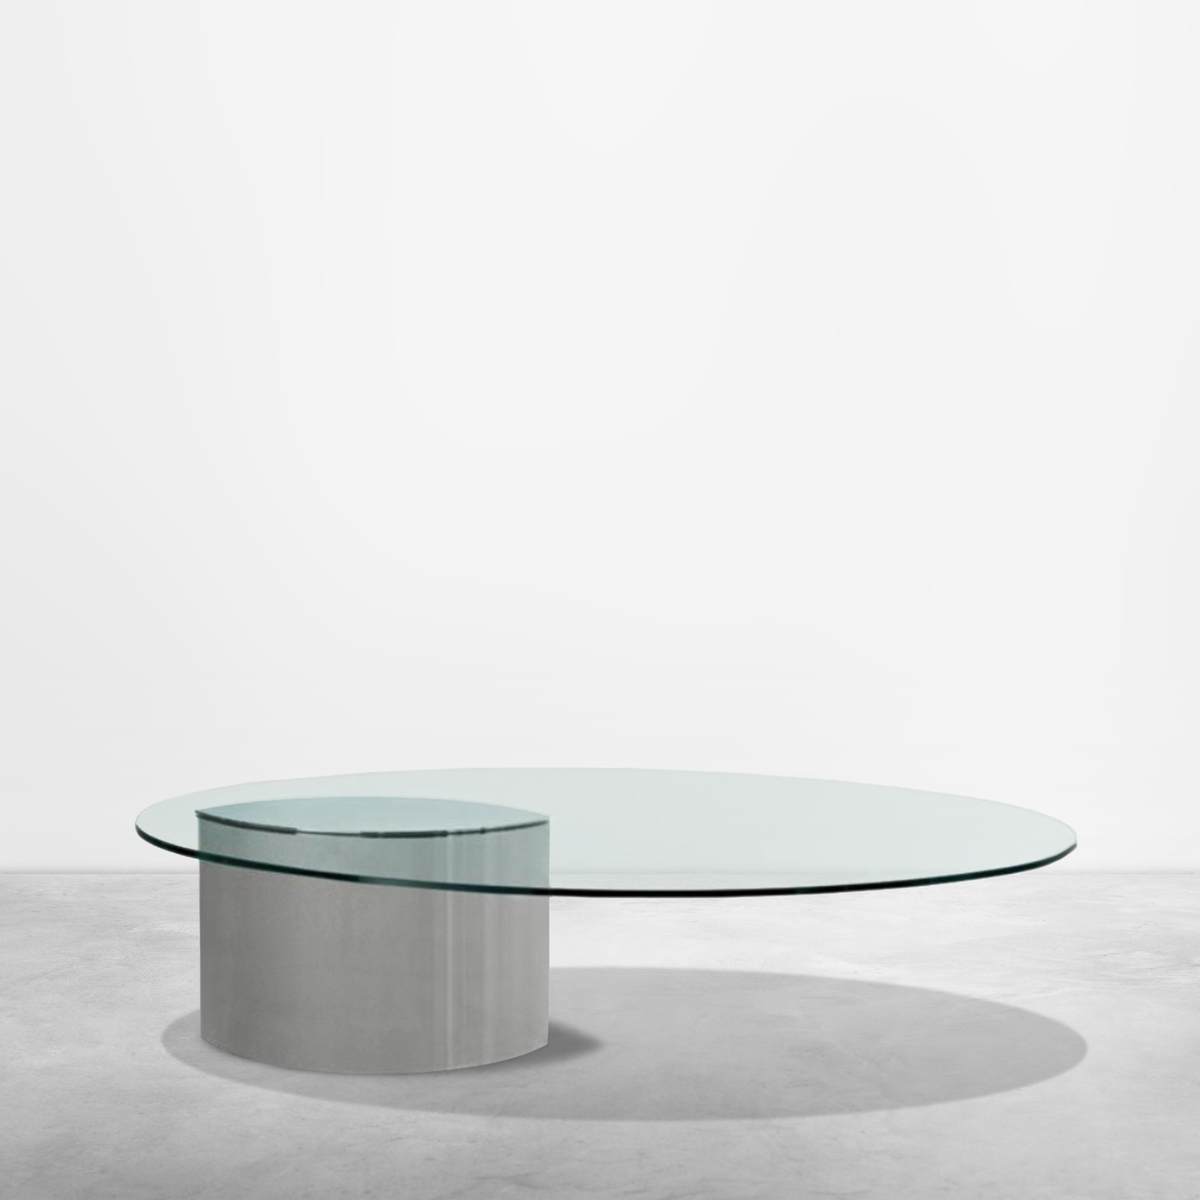 Cini Boeri for Gavina, Lunario cocktail cantilevered table in chromed metal and glass, 1970